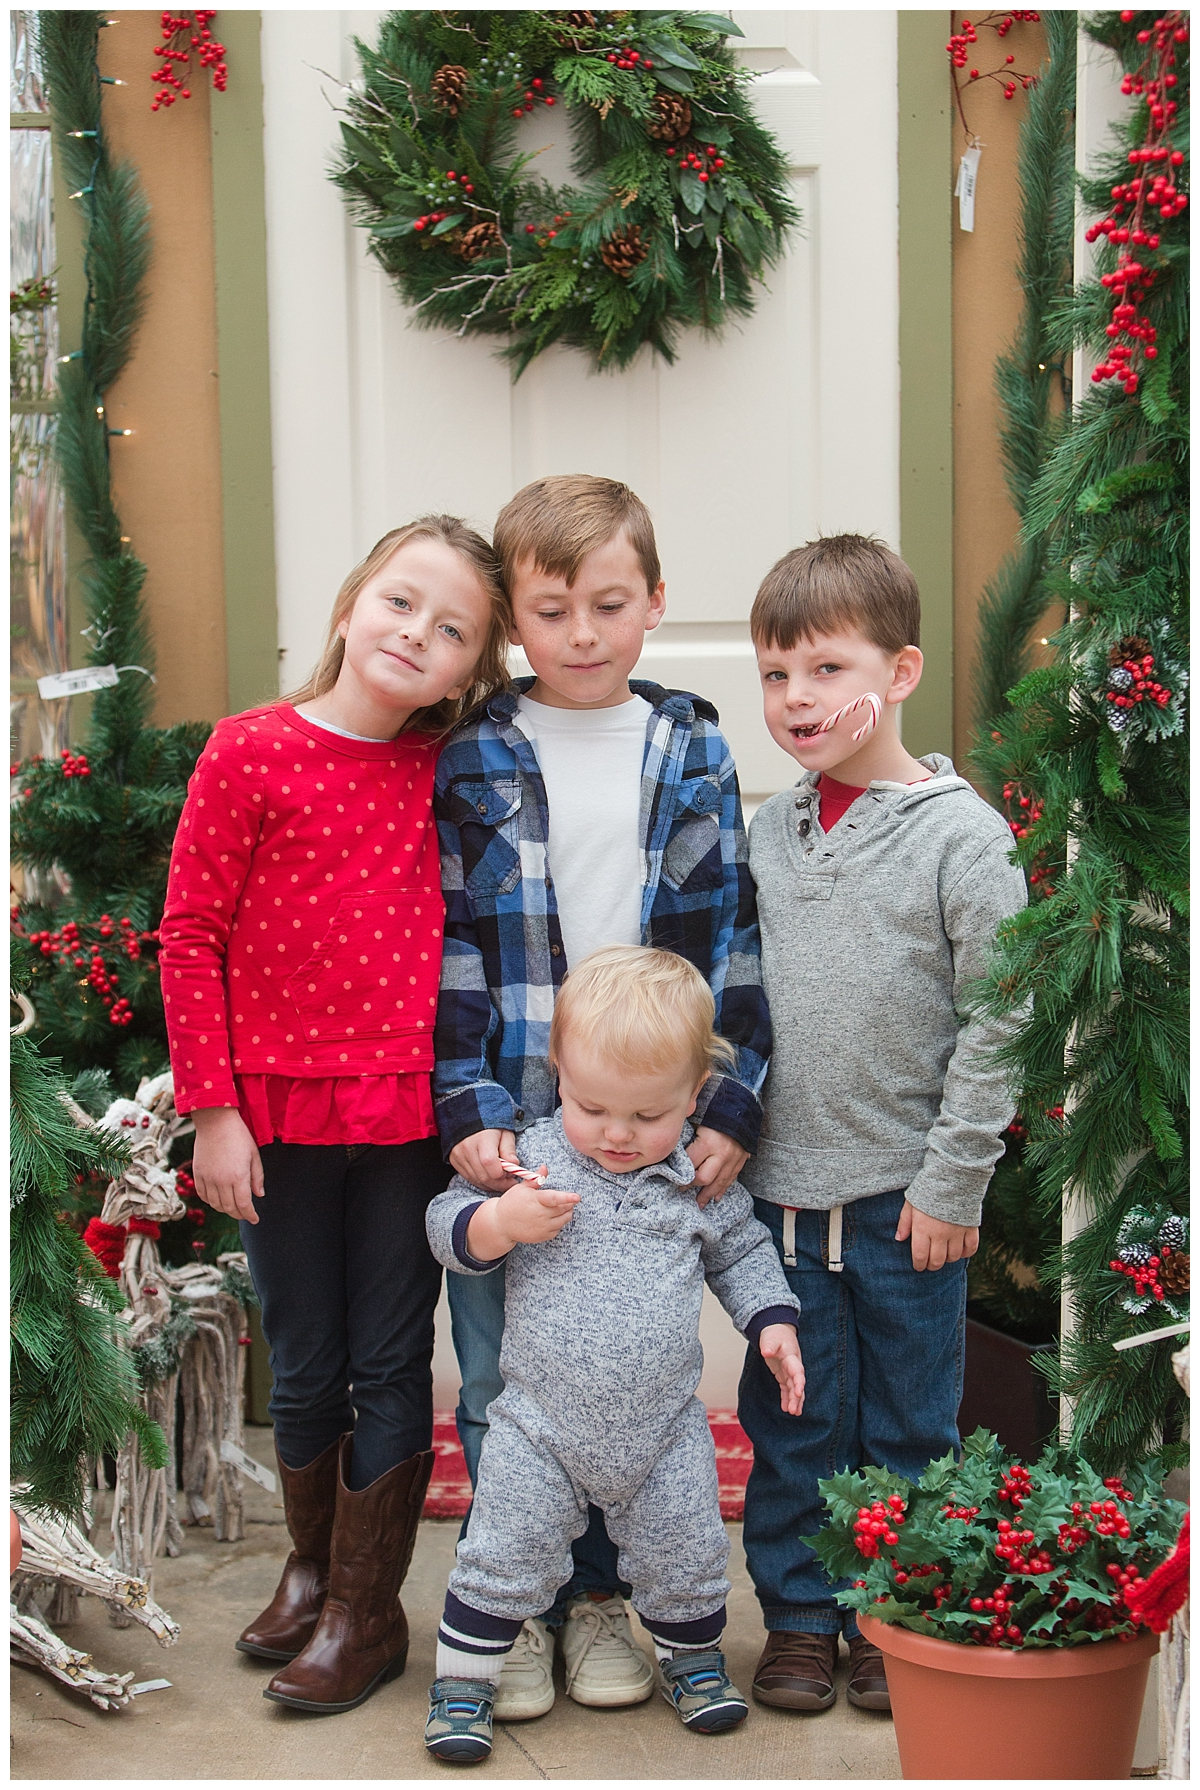 This was maybe the best we got during that visit! Four kids is tough in many ways...